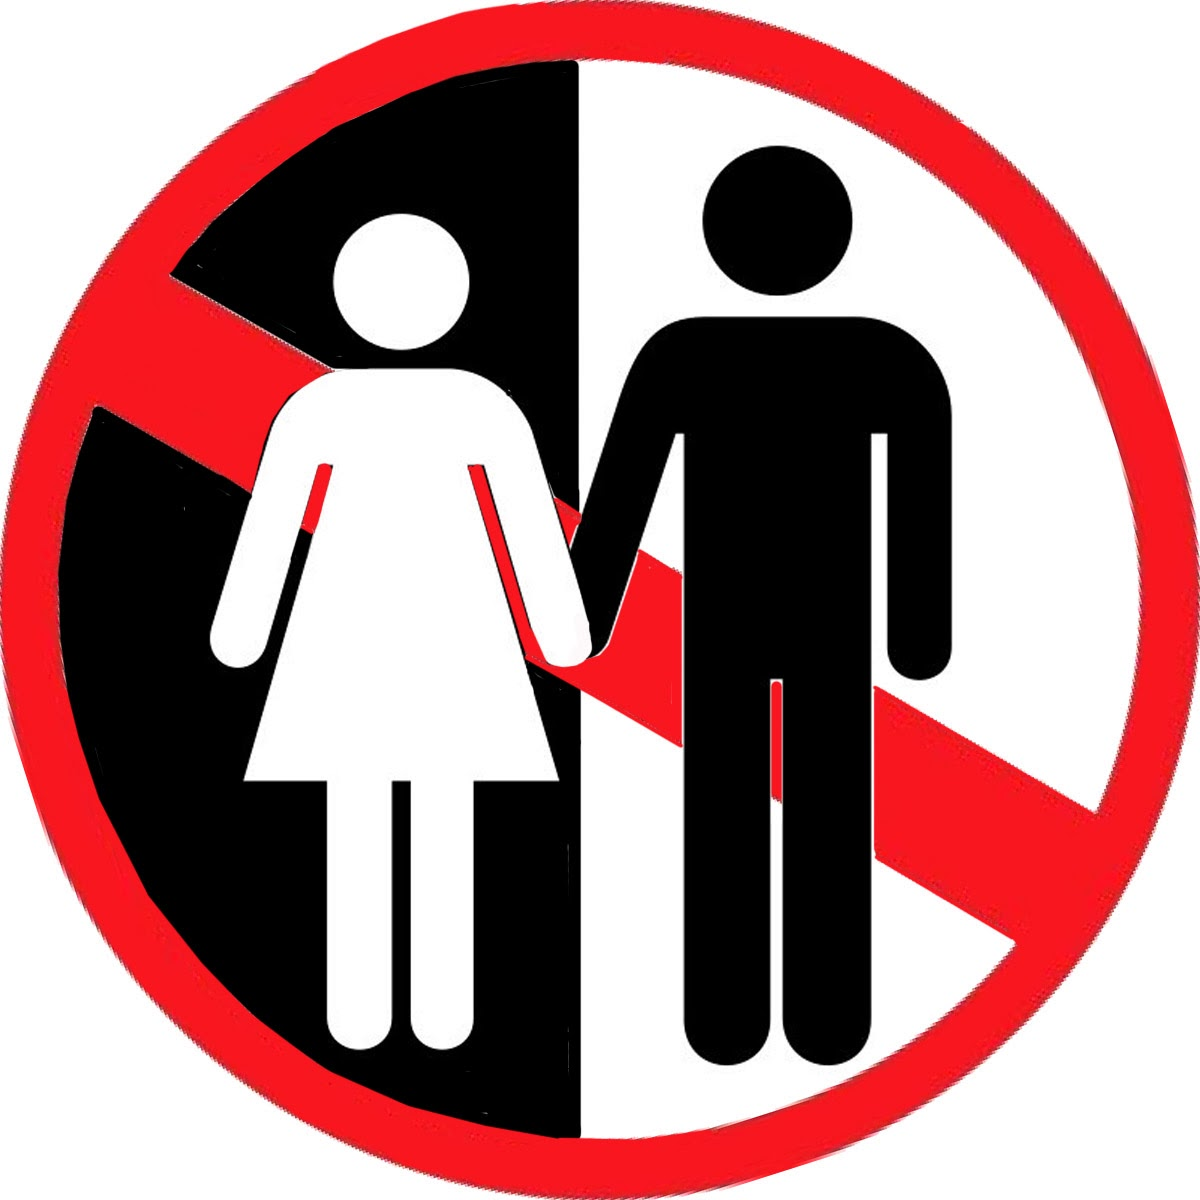 Bathroom Signs South Africa mark fine | author: the signs of apartheid